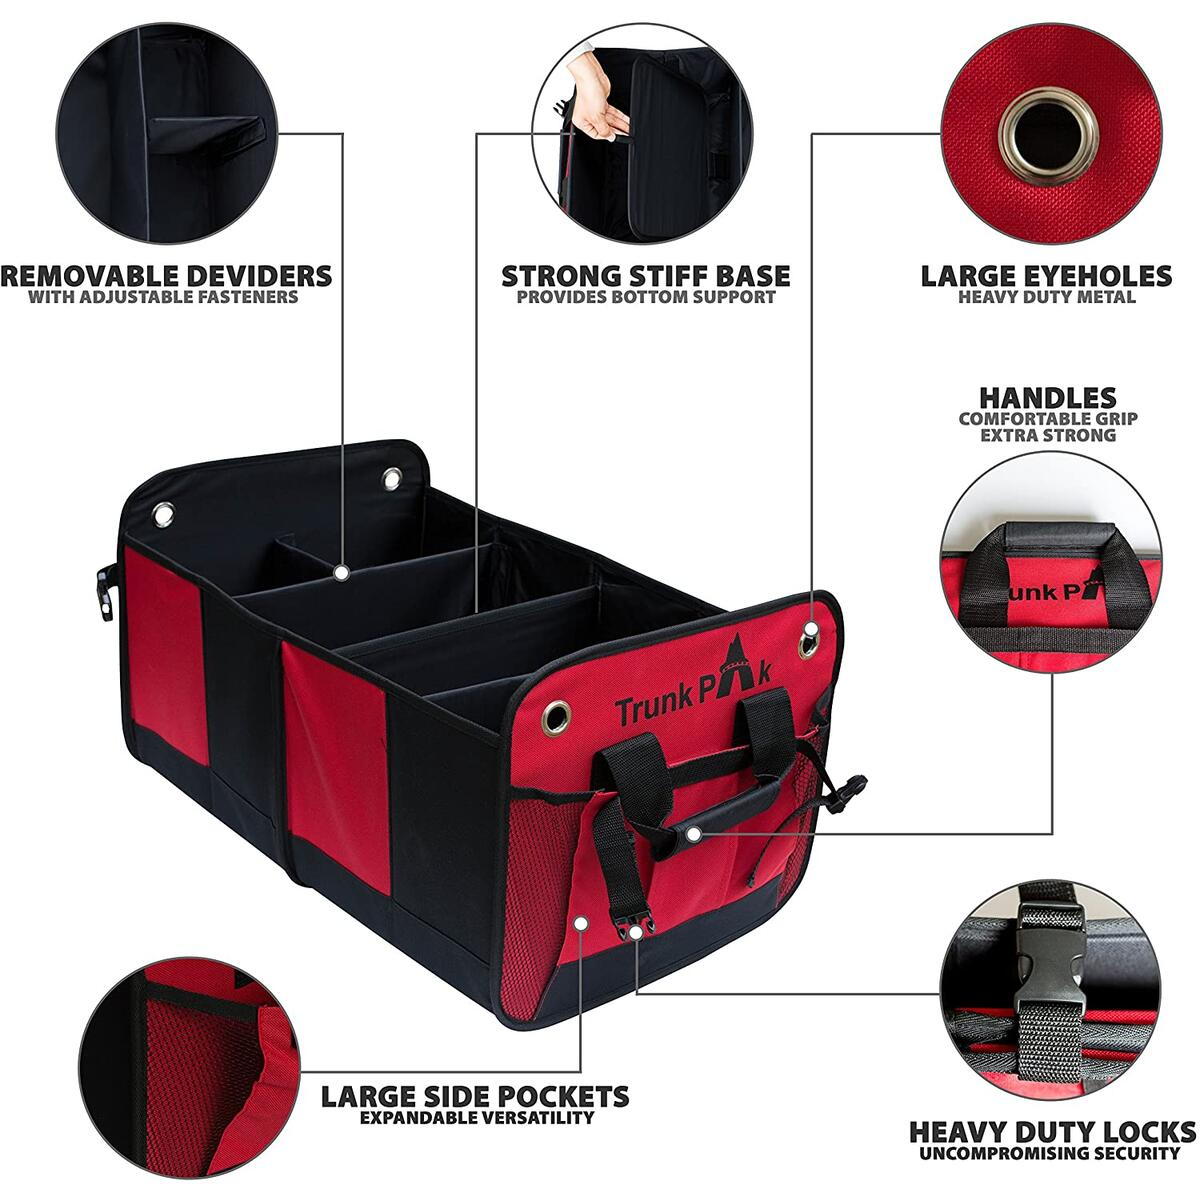 Trunk Organizer - Collapsible Car Organizer For All Types Of Vehicles - Vehicle Storage & Car Trunk Box For & Auto Home Use - Heavy Duty Fabric With Steady Cardboard - 6 Compartments - Red & Black